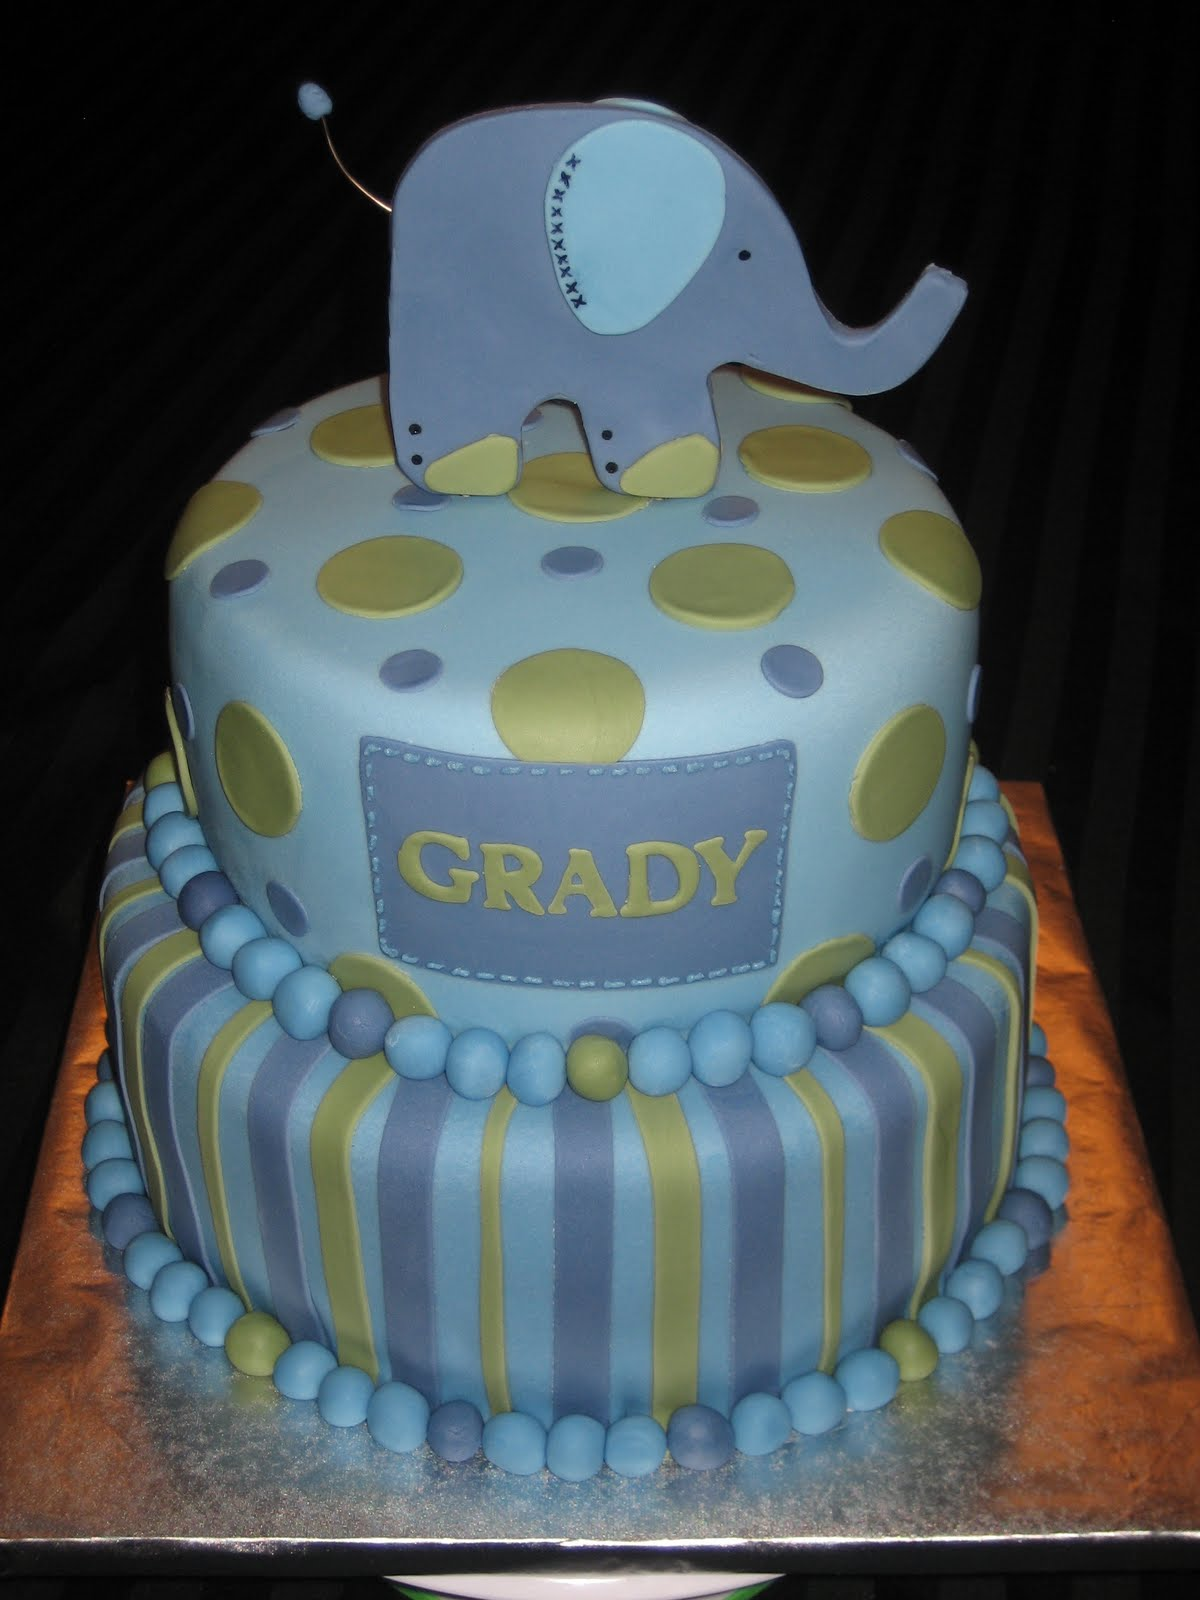 Living Room Decorating Ideas Baby Shower Cake Ideas elephant